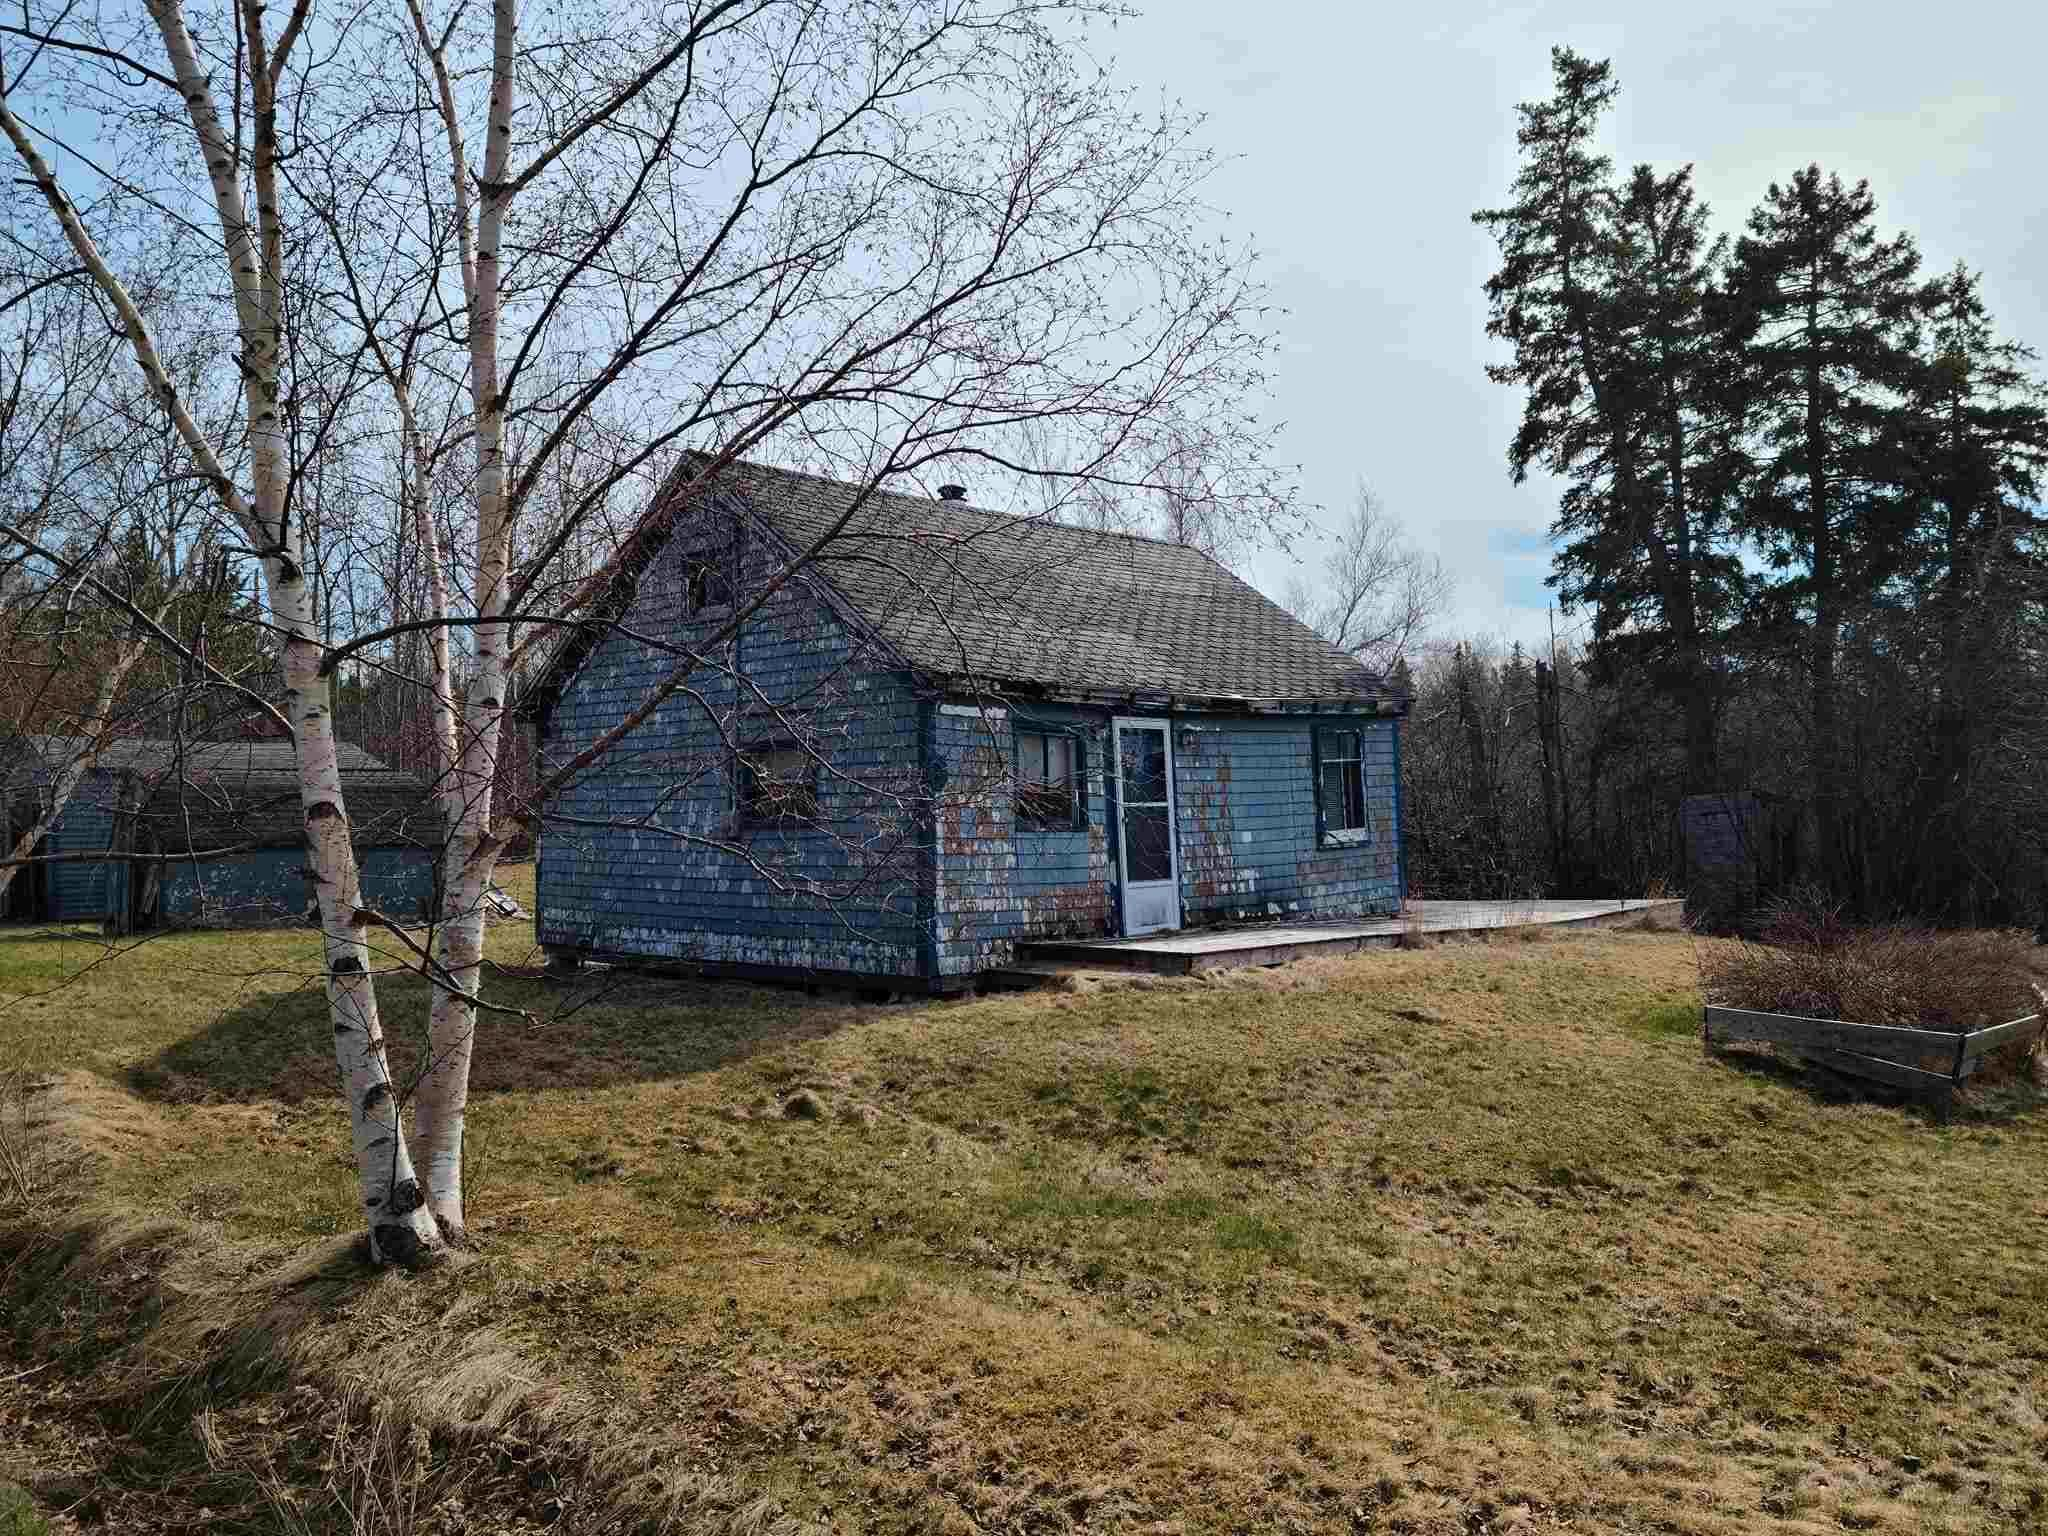 Main Photo: 1 MacKenzie Road in Malagash Mine: 103-Malagash, Wentworth Vacant Land for sale (Northern Region)  : MLS®# 202109567